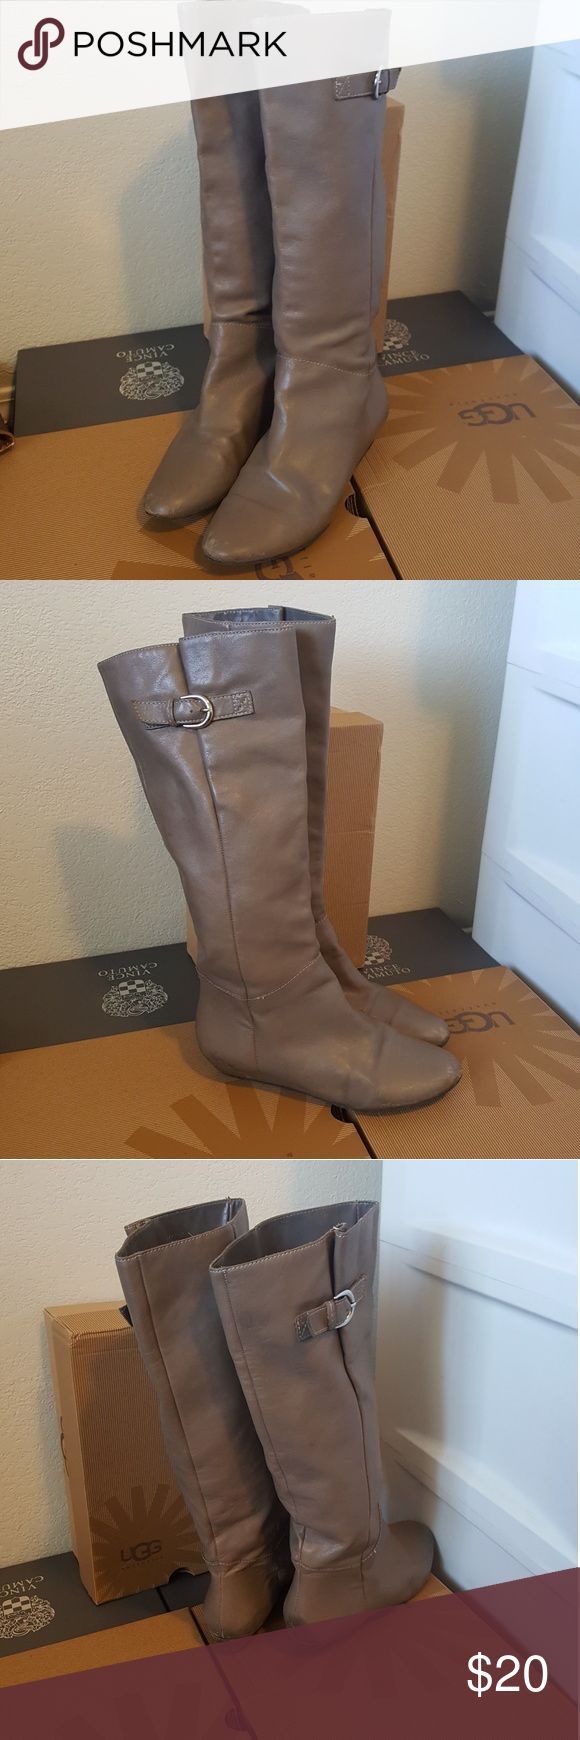 Steve madden gray intyce boots Knee riding boots Size 7 or 7 1/2 Leather needs some care on usual areas otherwise excellent condition. Steve Madden Shoes Heeled Boots